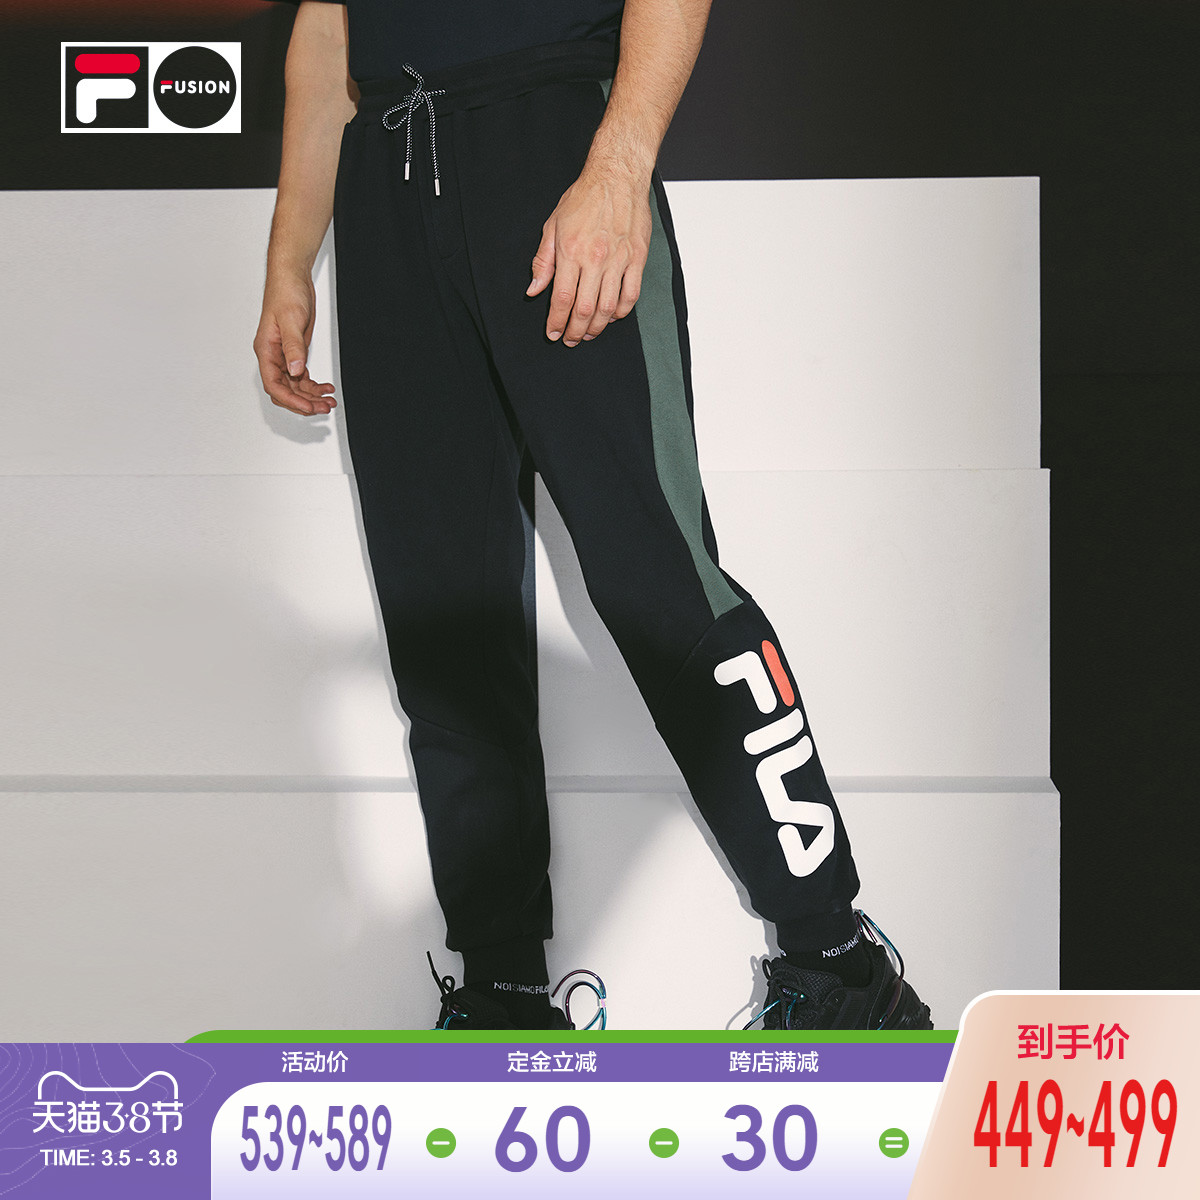 FILA fusion men's 2020 spring new leisure pants knitted trousers men's bodysuit pants